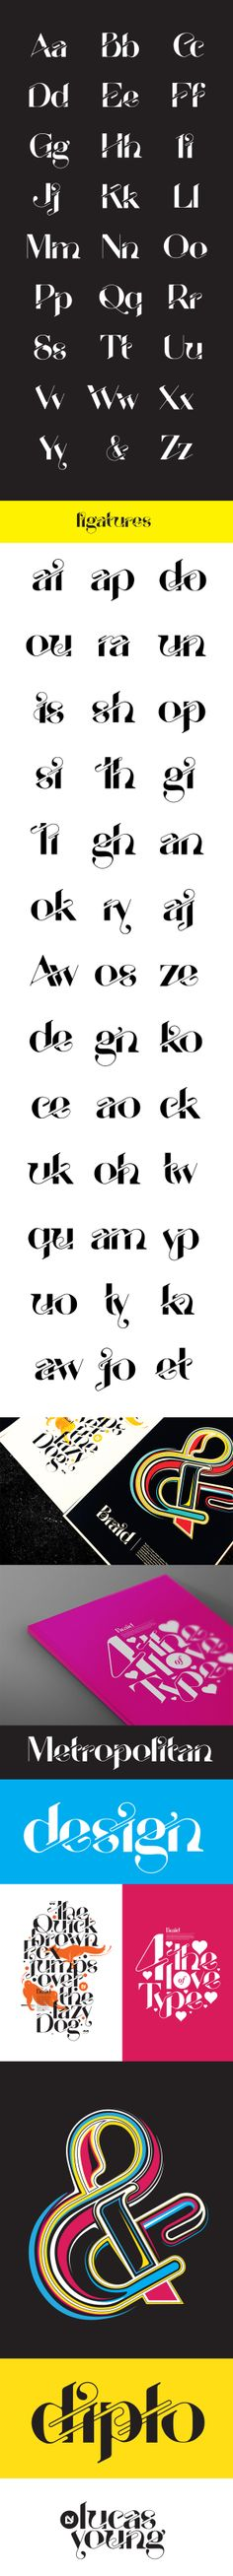 Braid Typeface by Lucas Young, via Behance